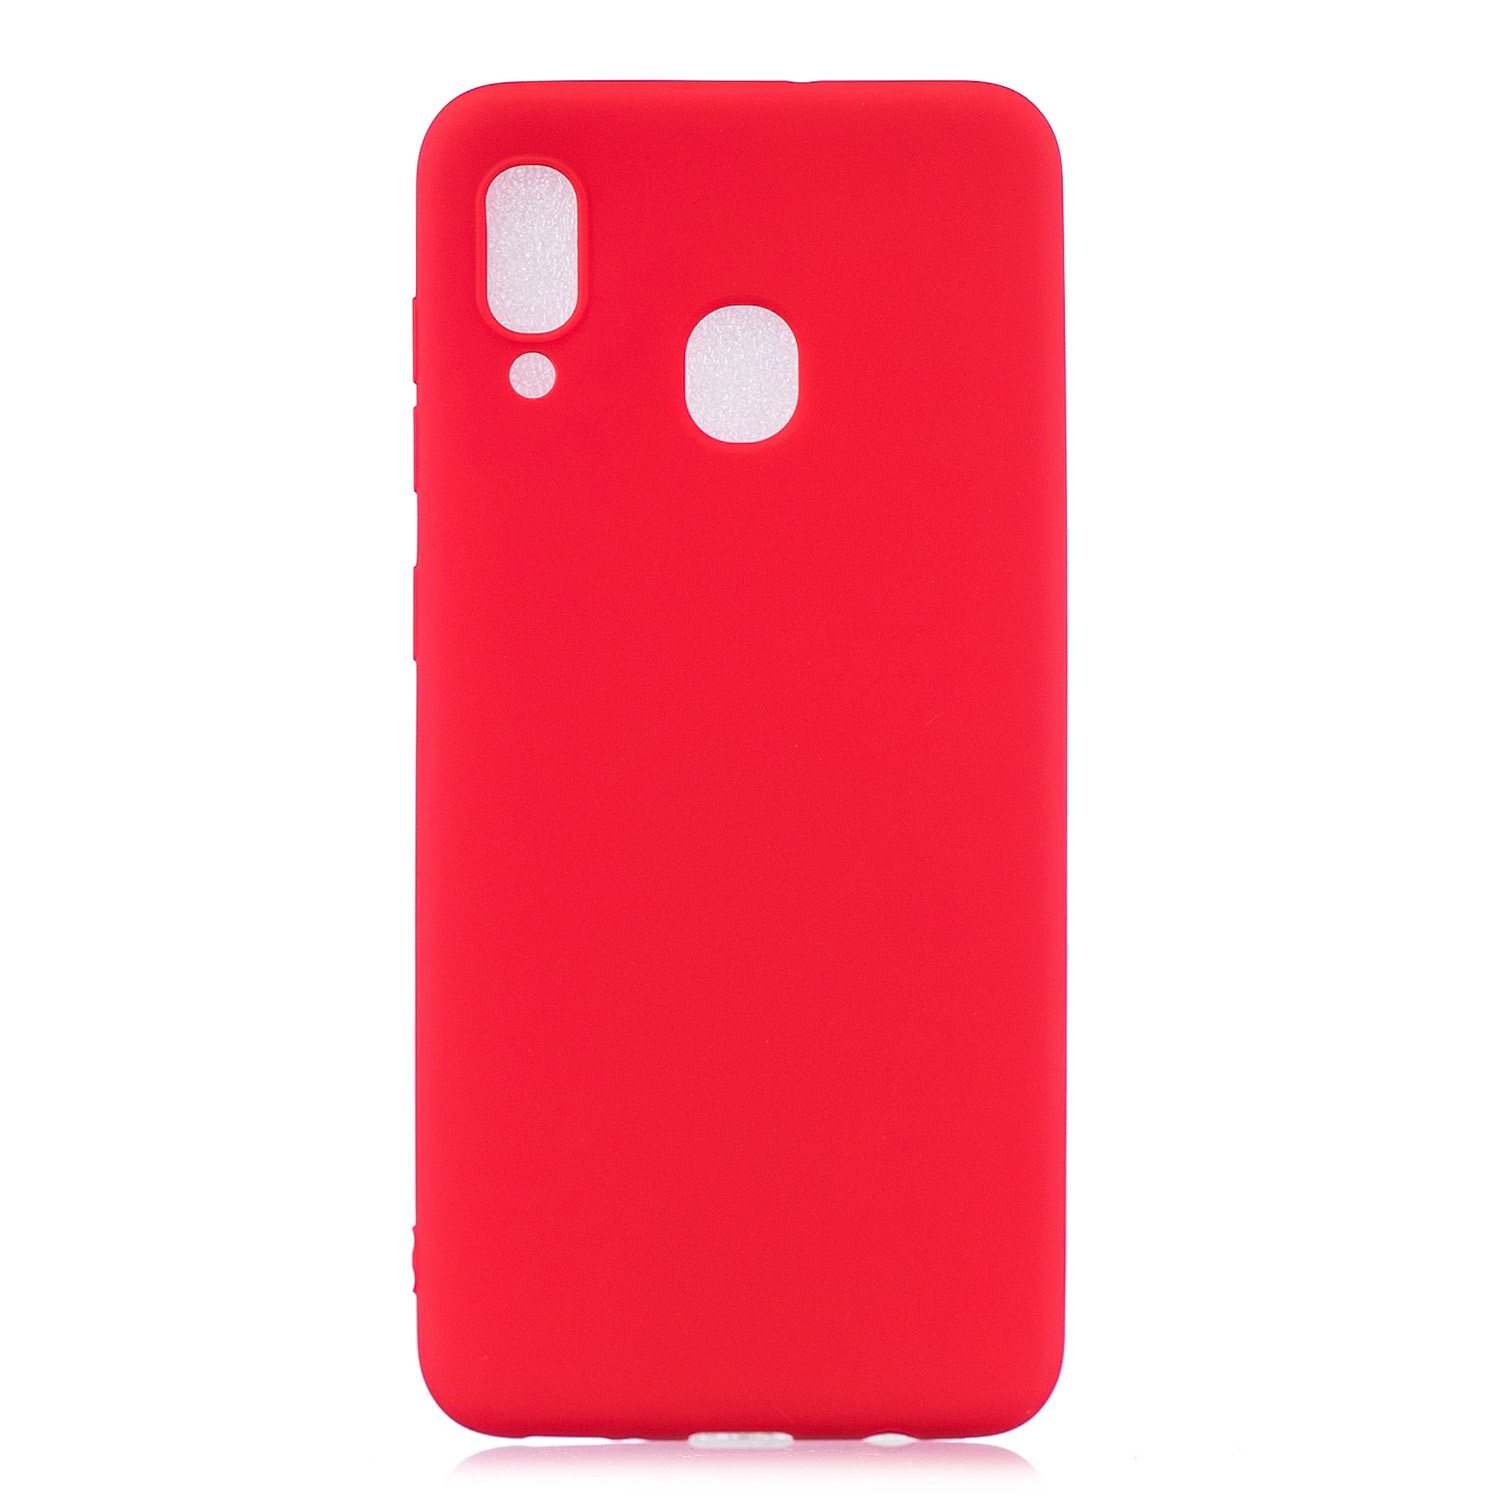 For HUAWEI Y9 2019 Lovely Candy Color Matte TPU Anti-scratch Non-slip Protective Cover Back Case red